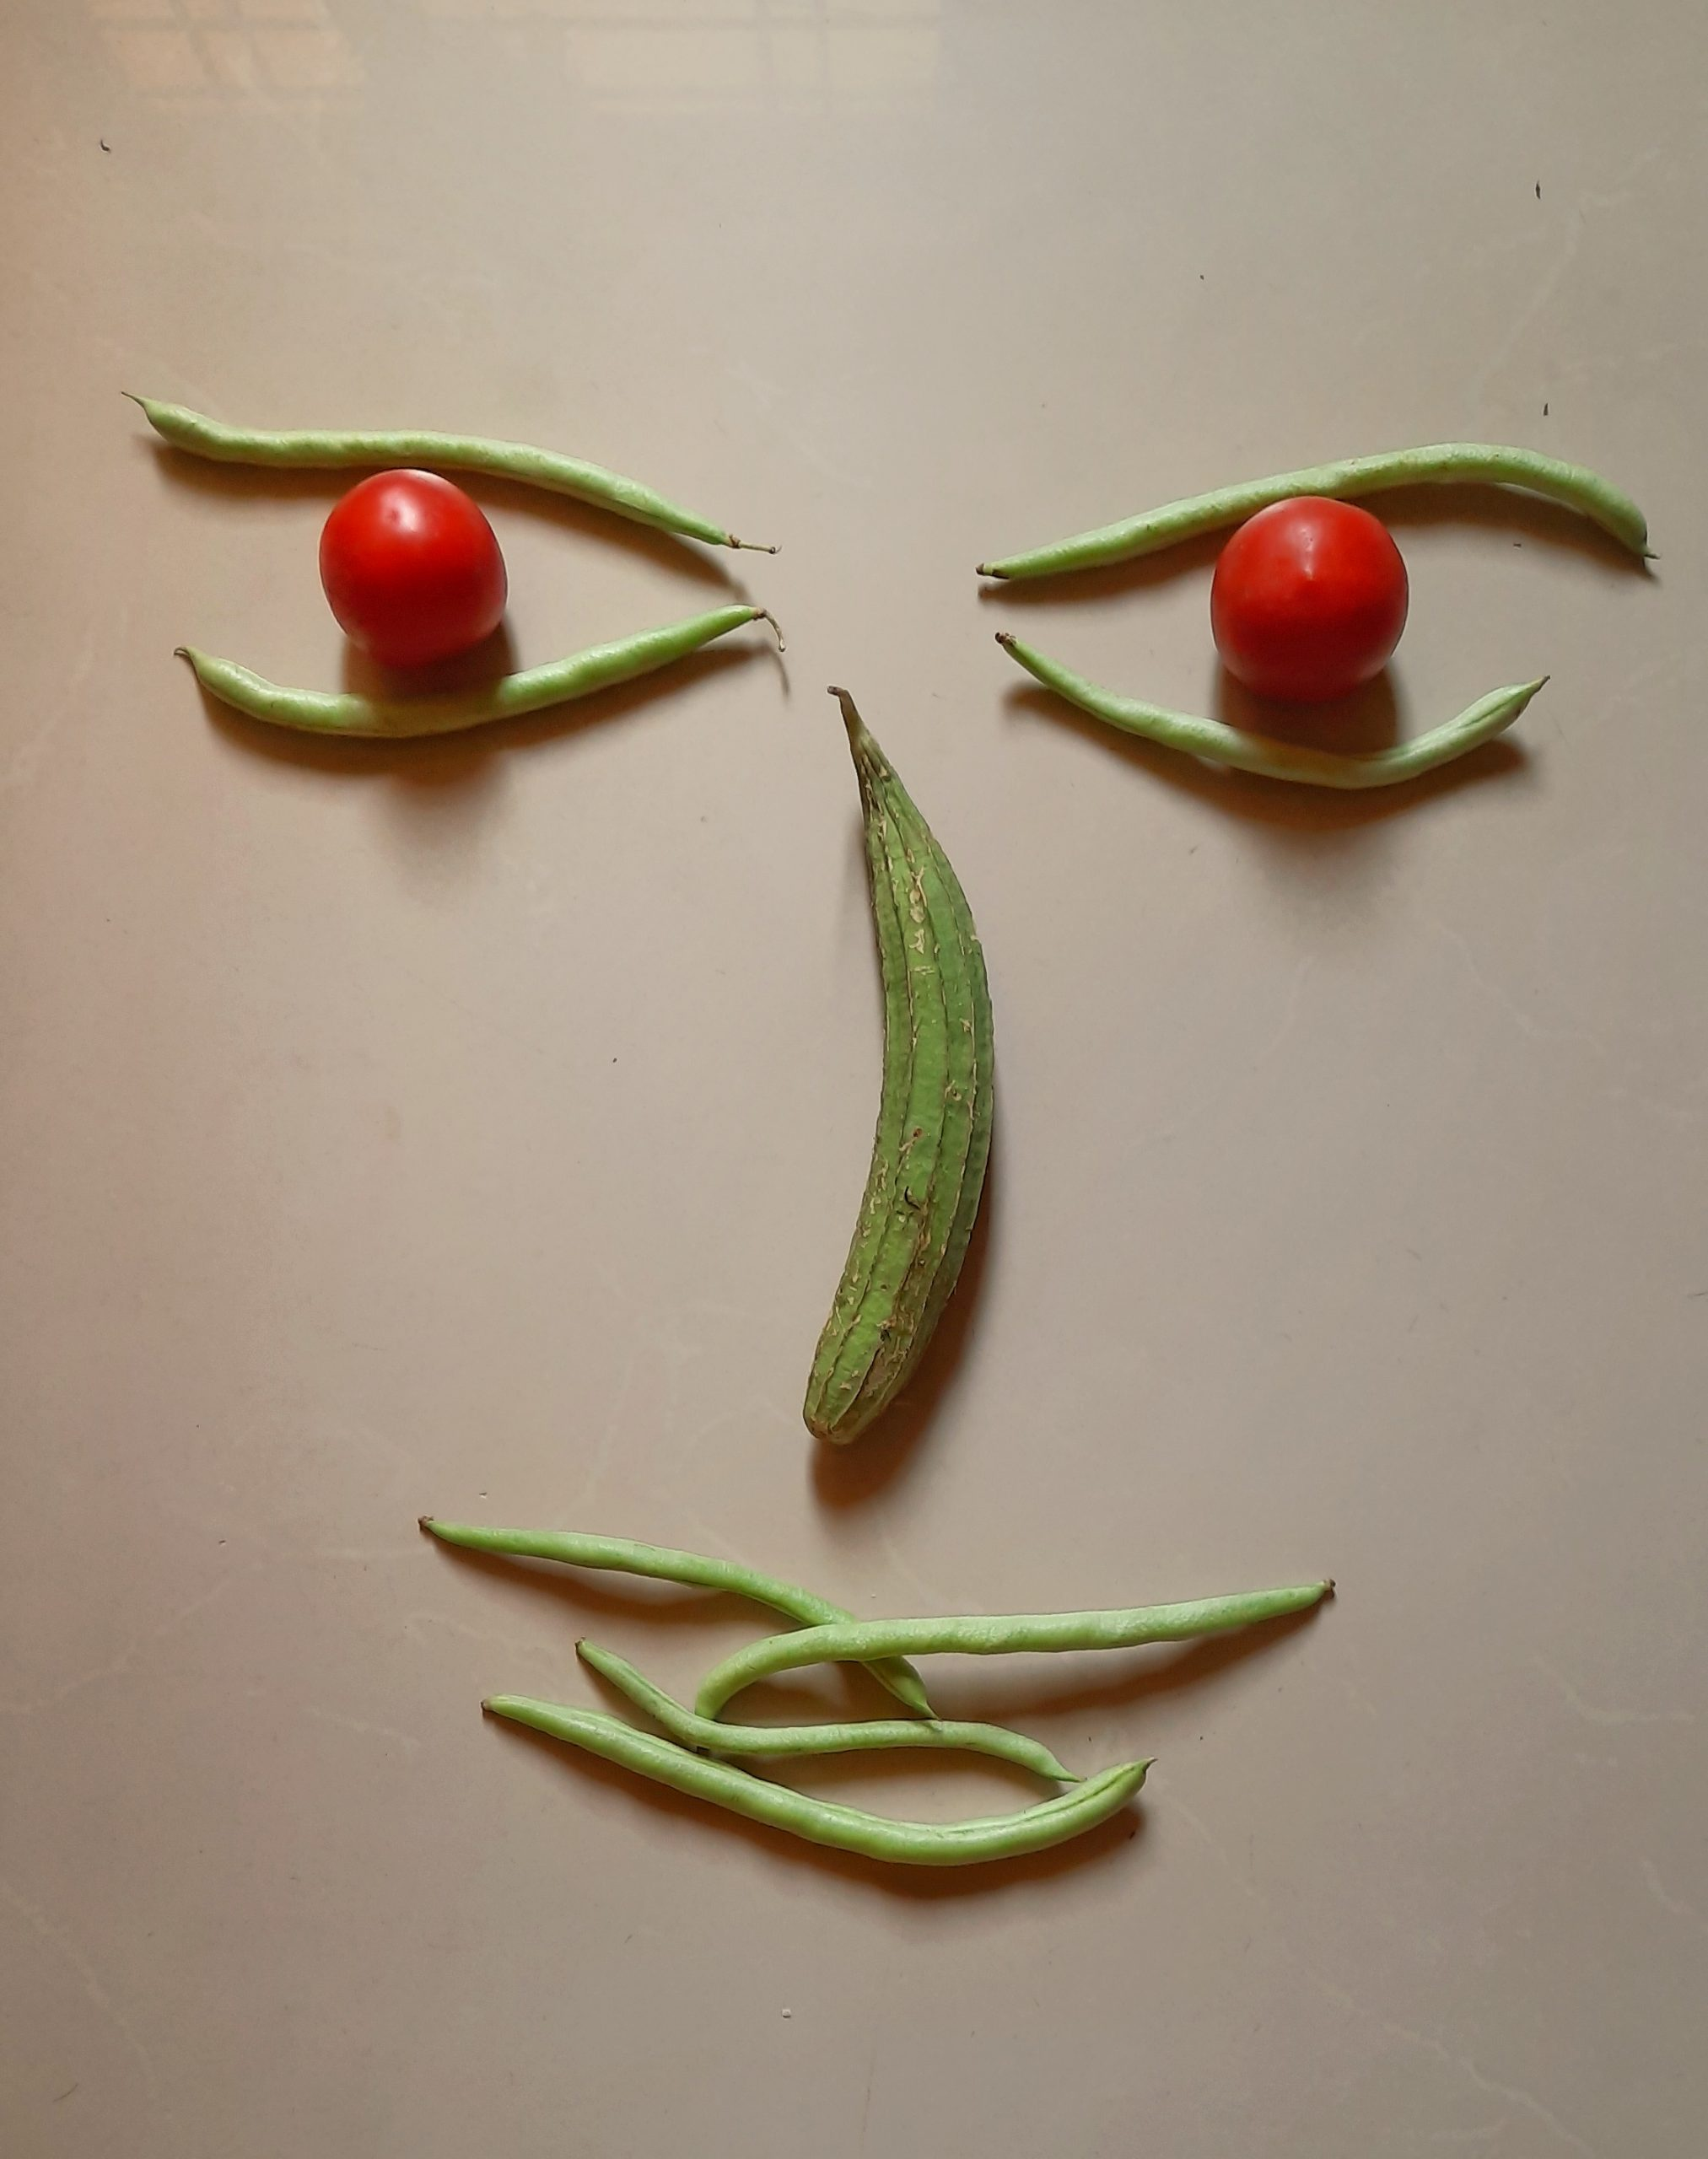 Human face made with vegetables